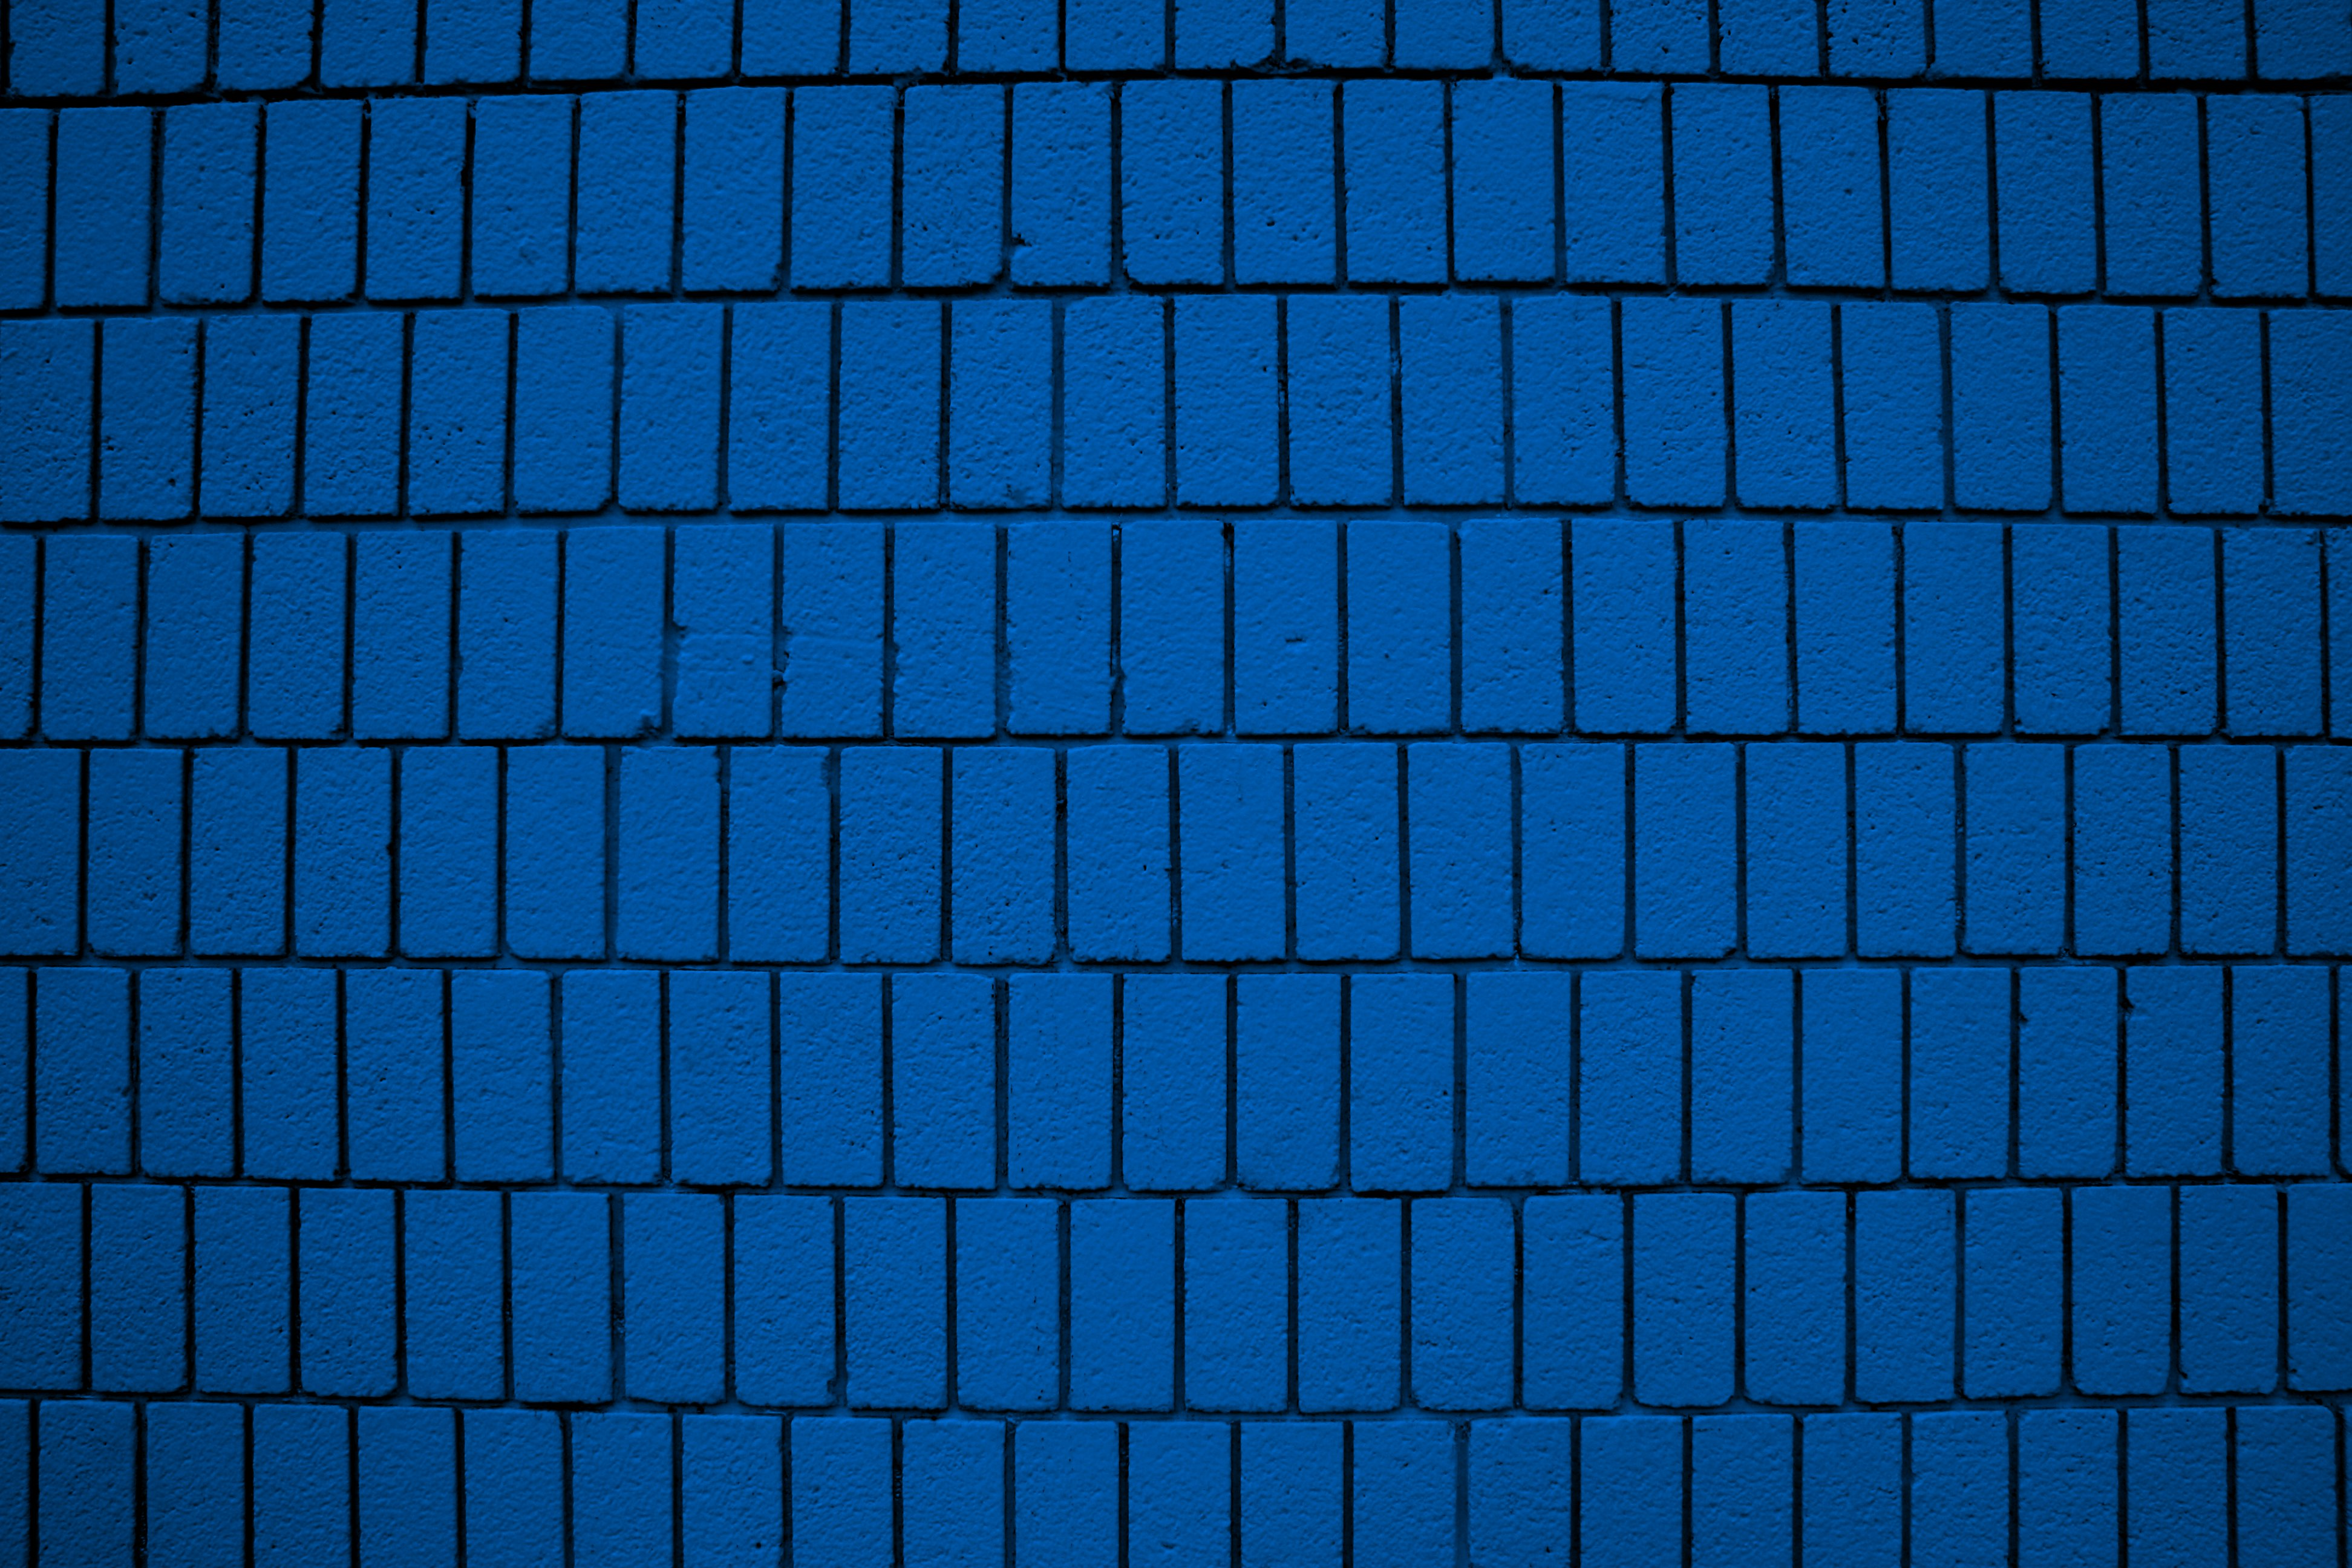 Blue Brick Wall Texture With Vertical Bricks Picture